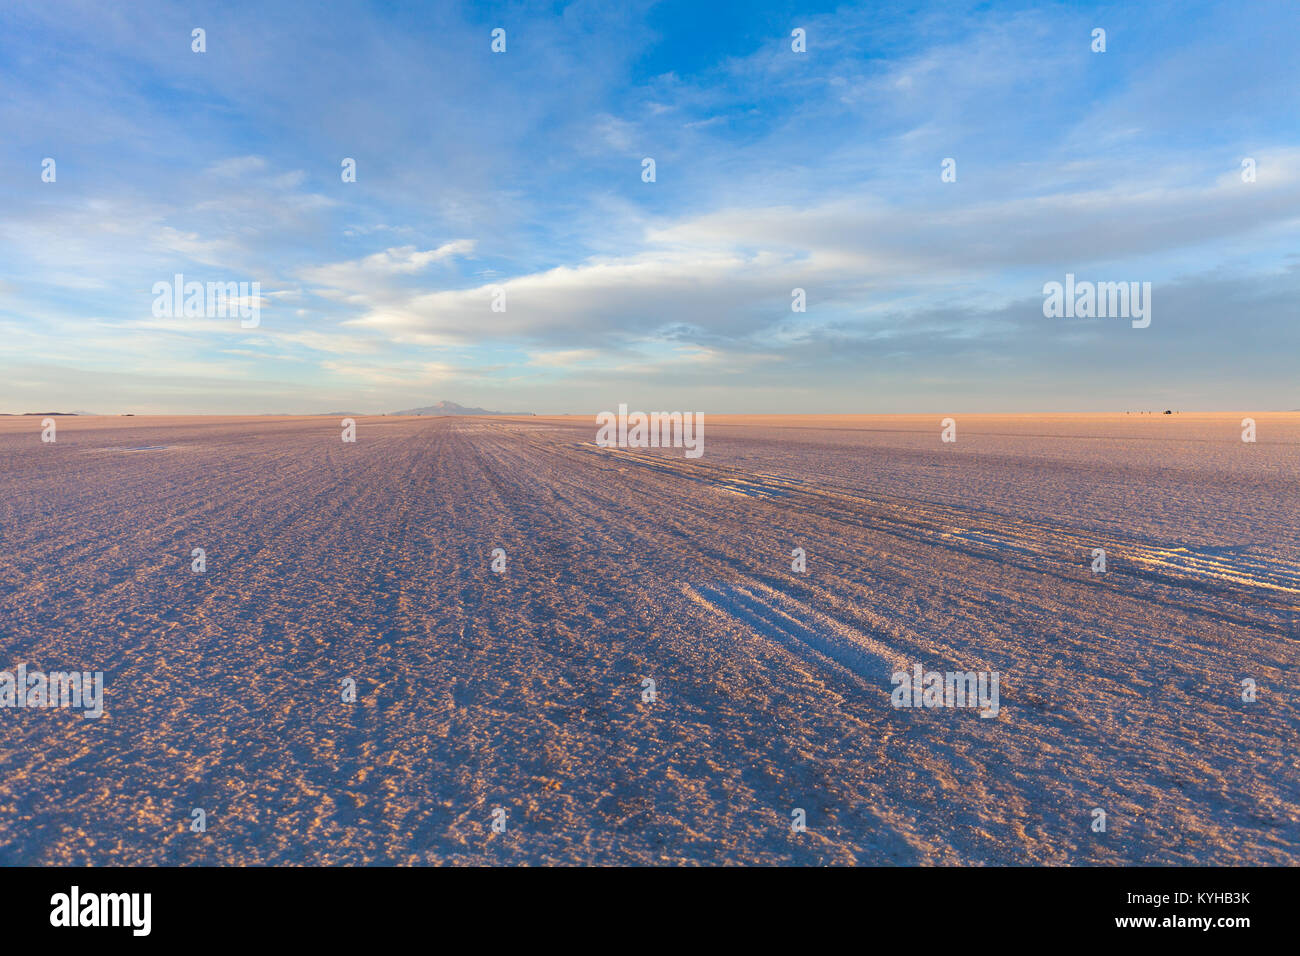 Salar de Uyuni salt marsh Photo Stock